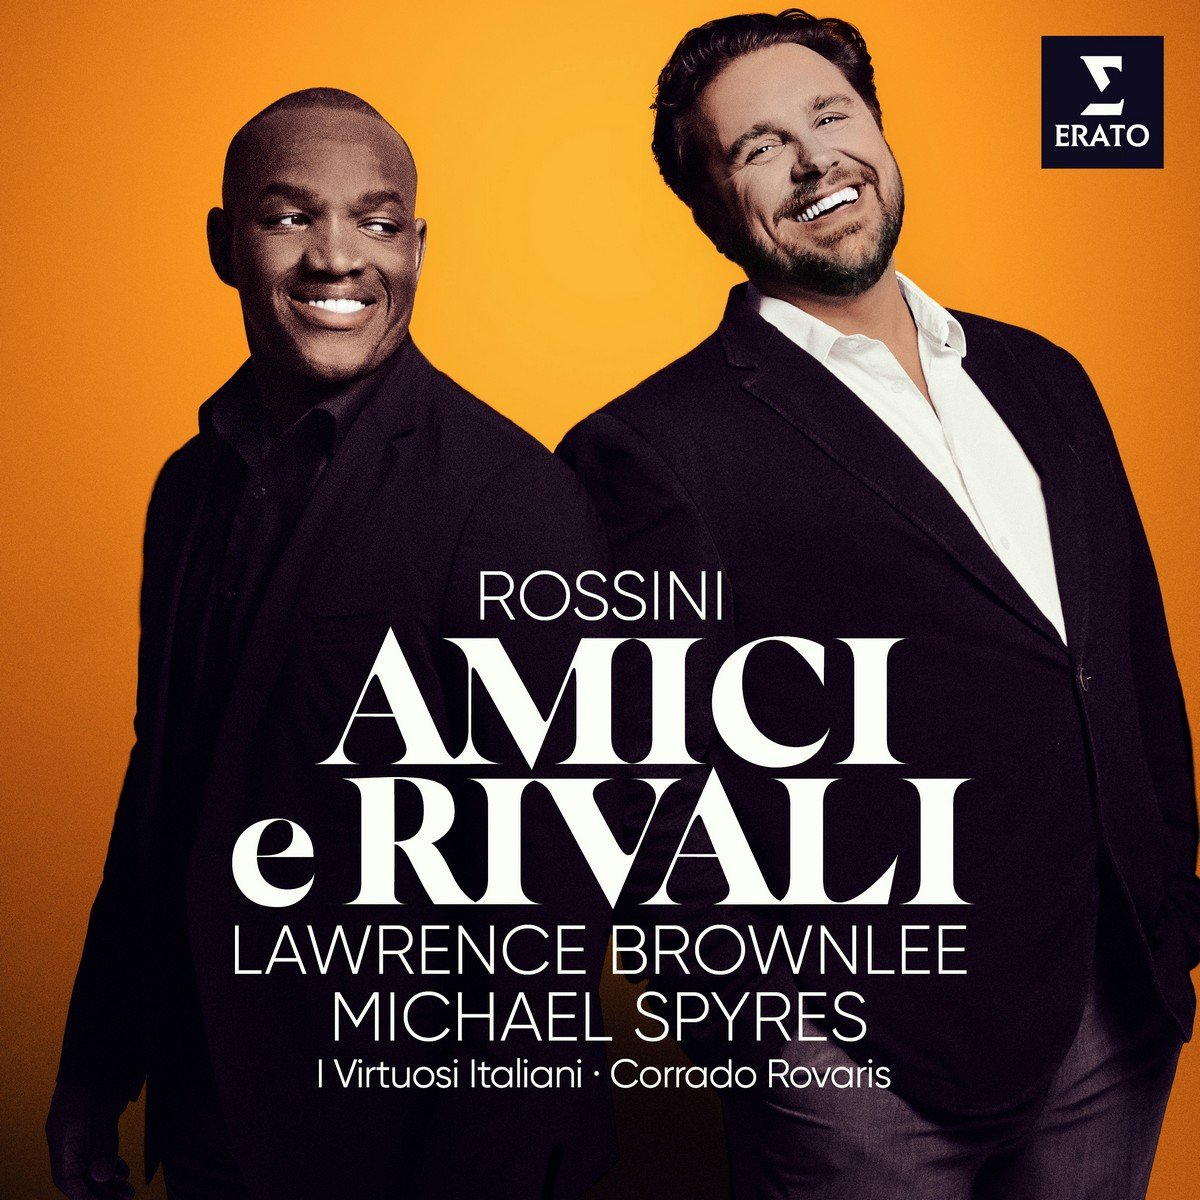 [Interview] Michael Spyres and Lawrence Brownlee on their new Rossini album